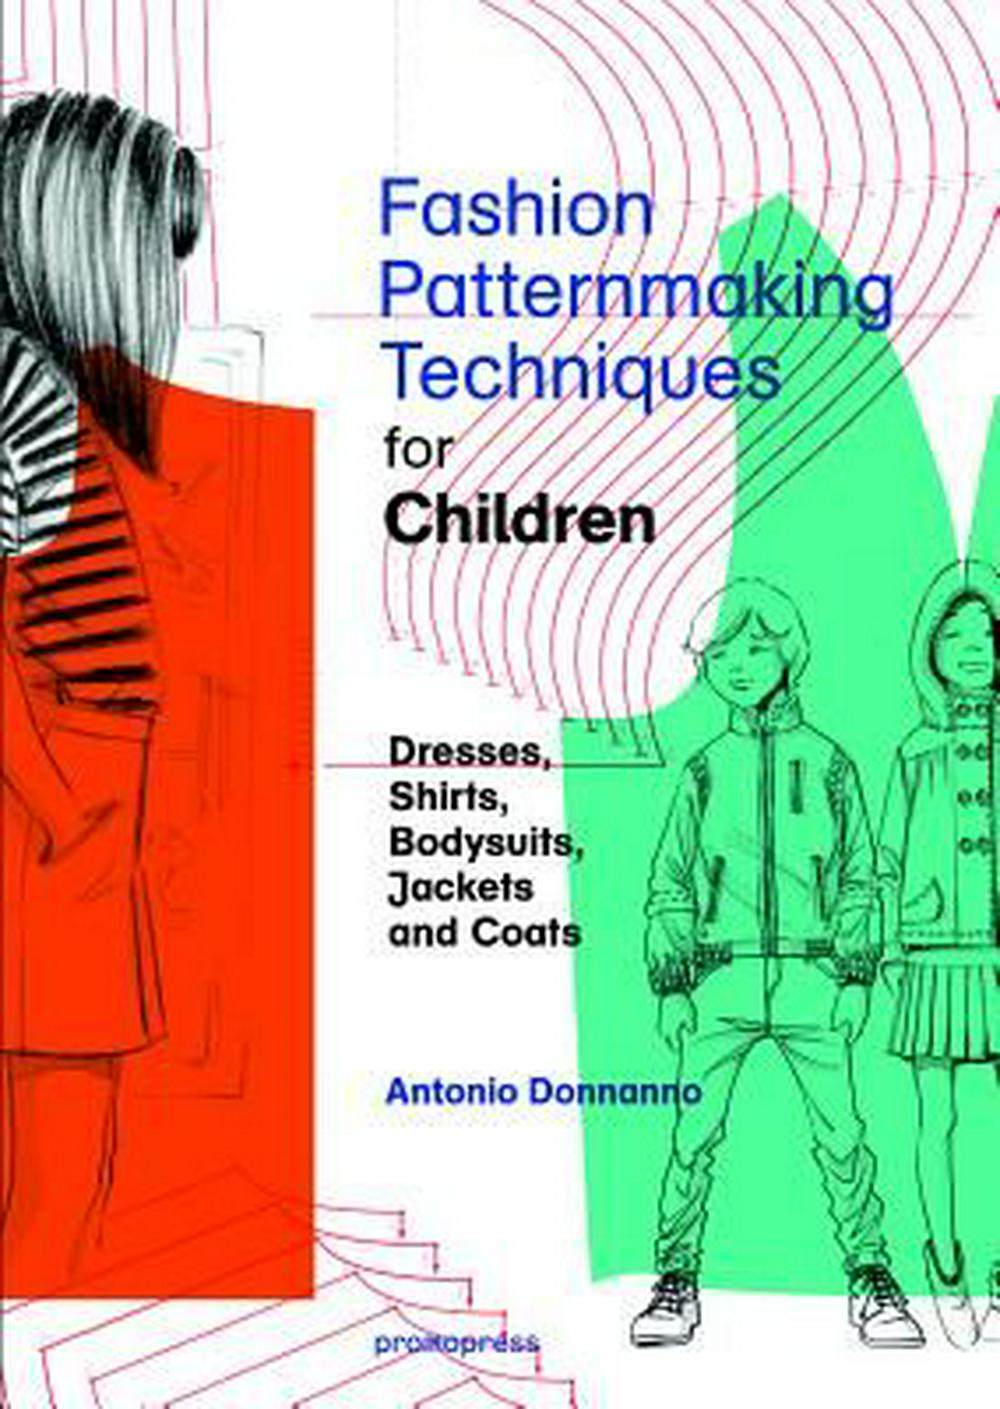 Fashion Patternmaking Techniques for Children by Antonio Donnanno, ISBN: 9788416851140